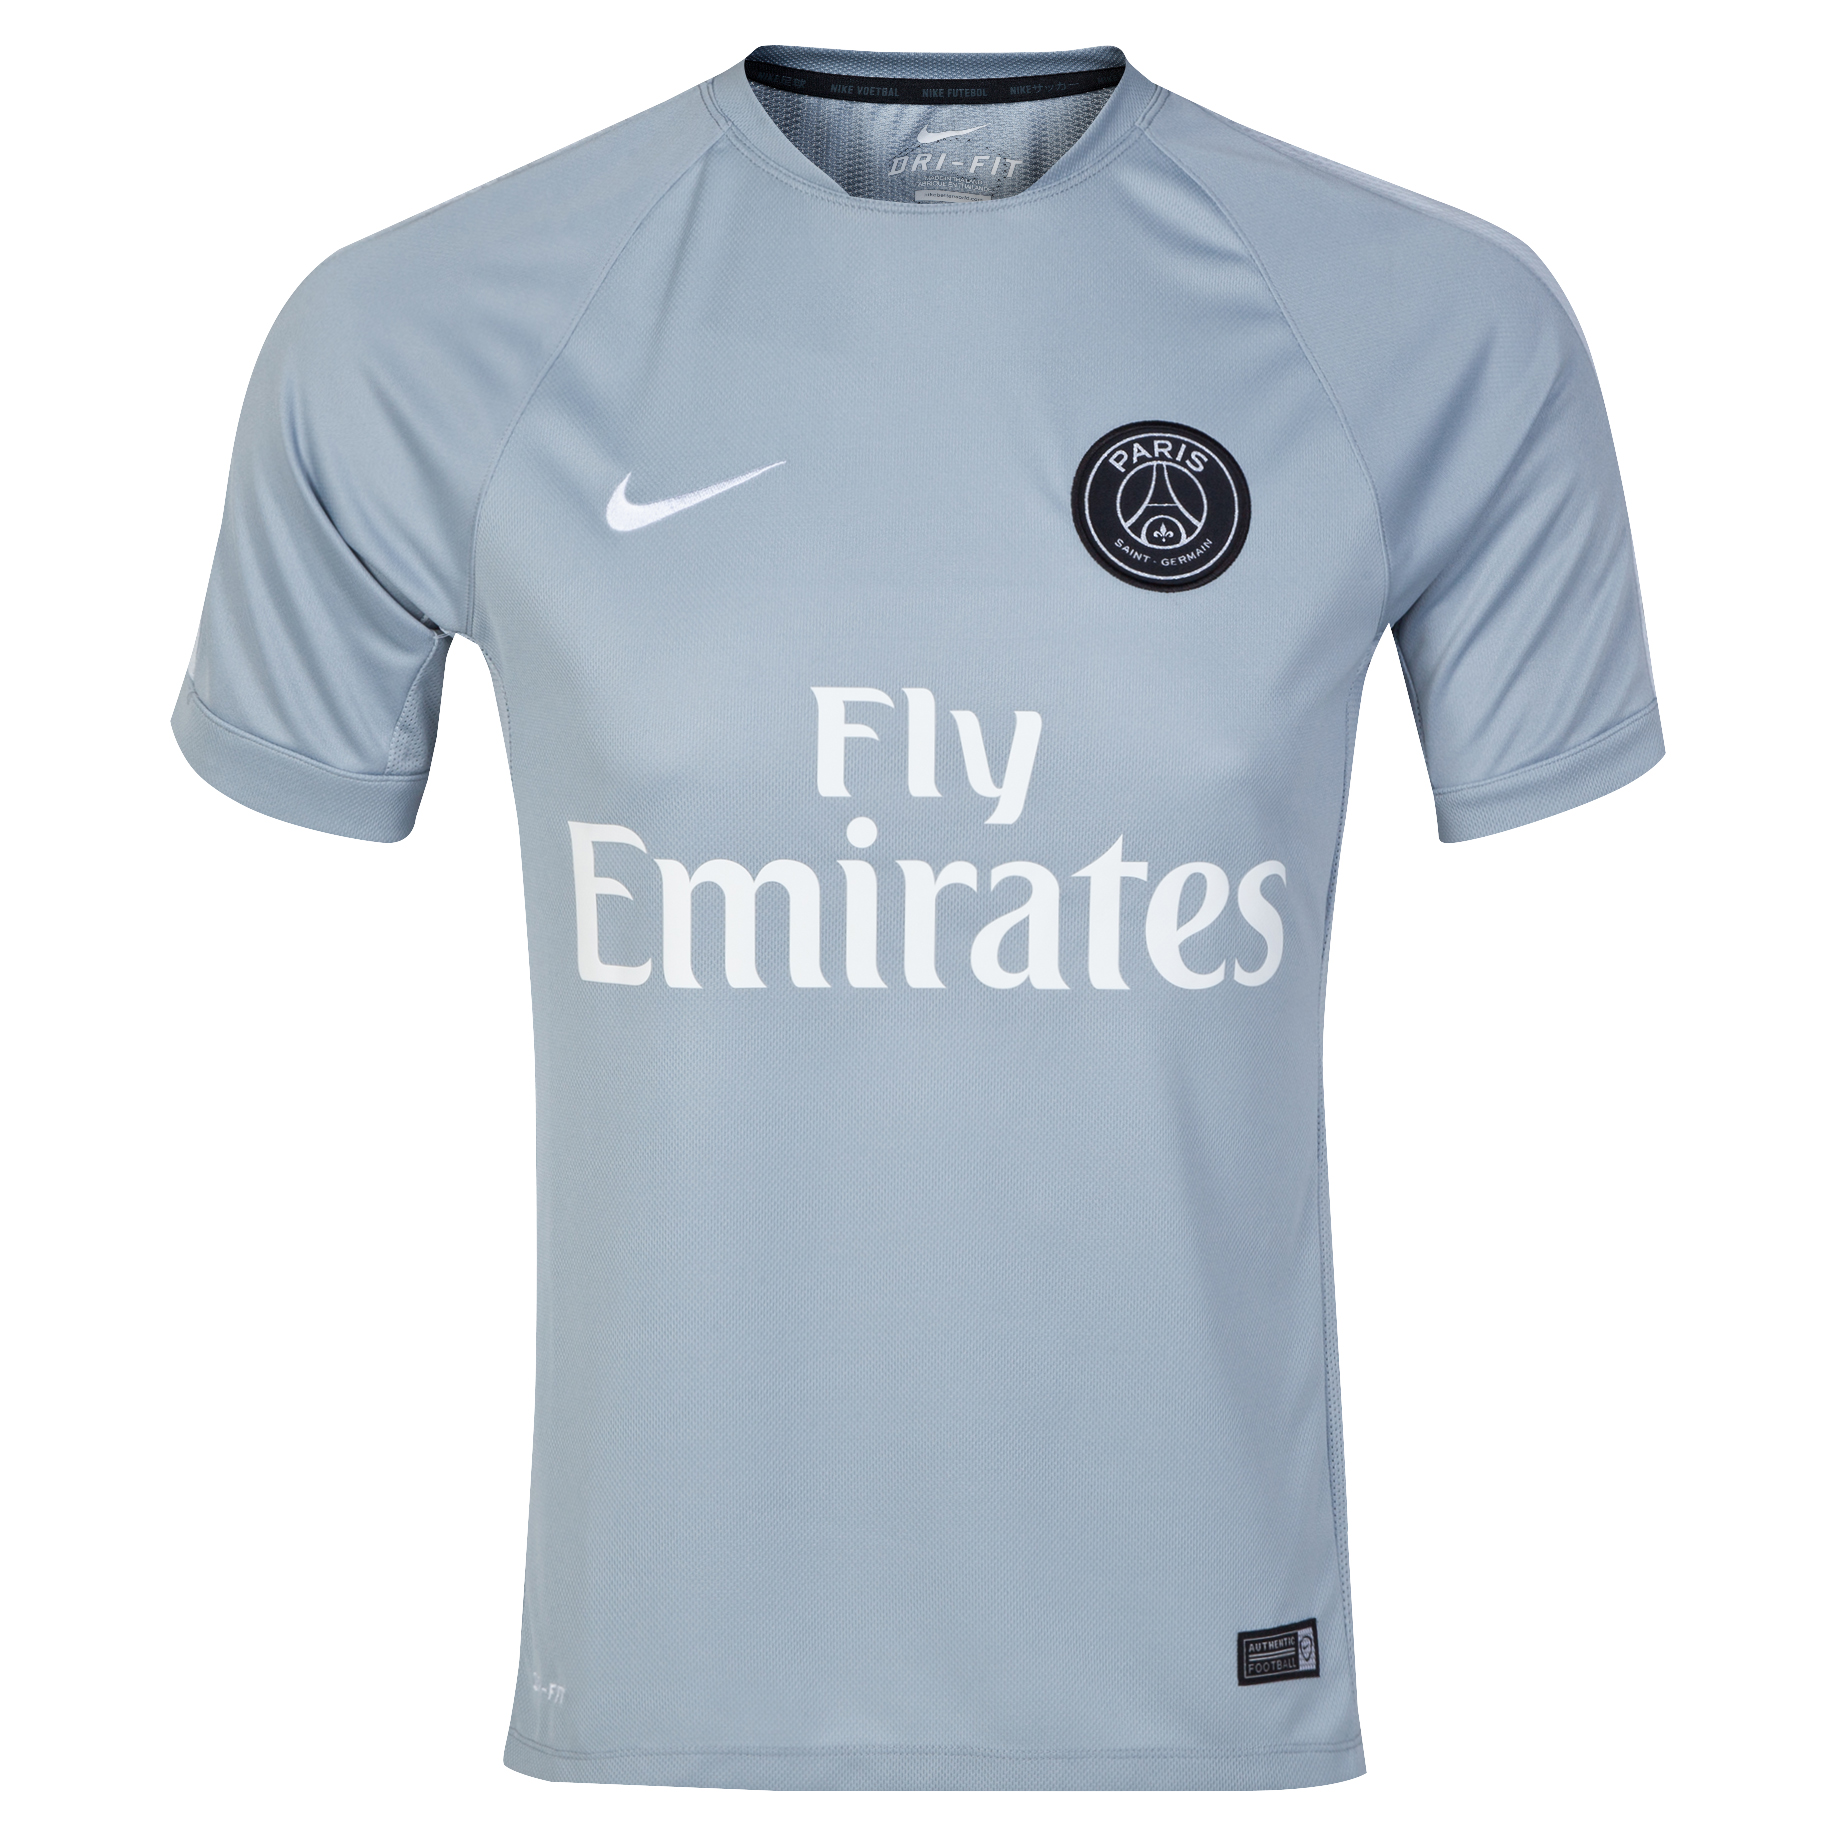 Paris Saint-Germain Squad Short Sleeve Training Top Lt Grey